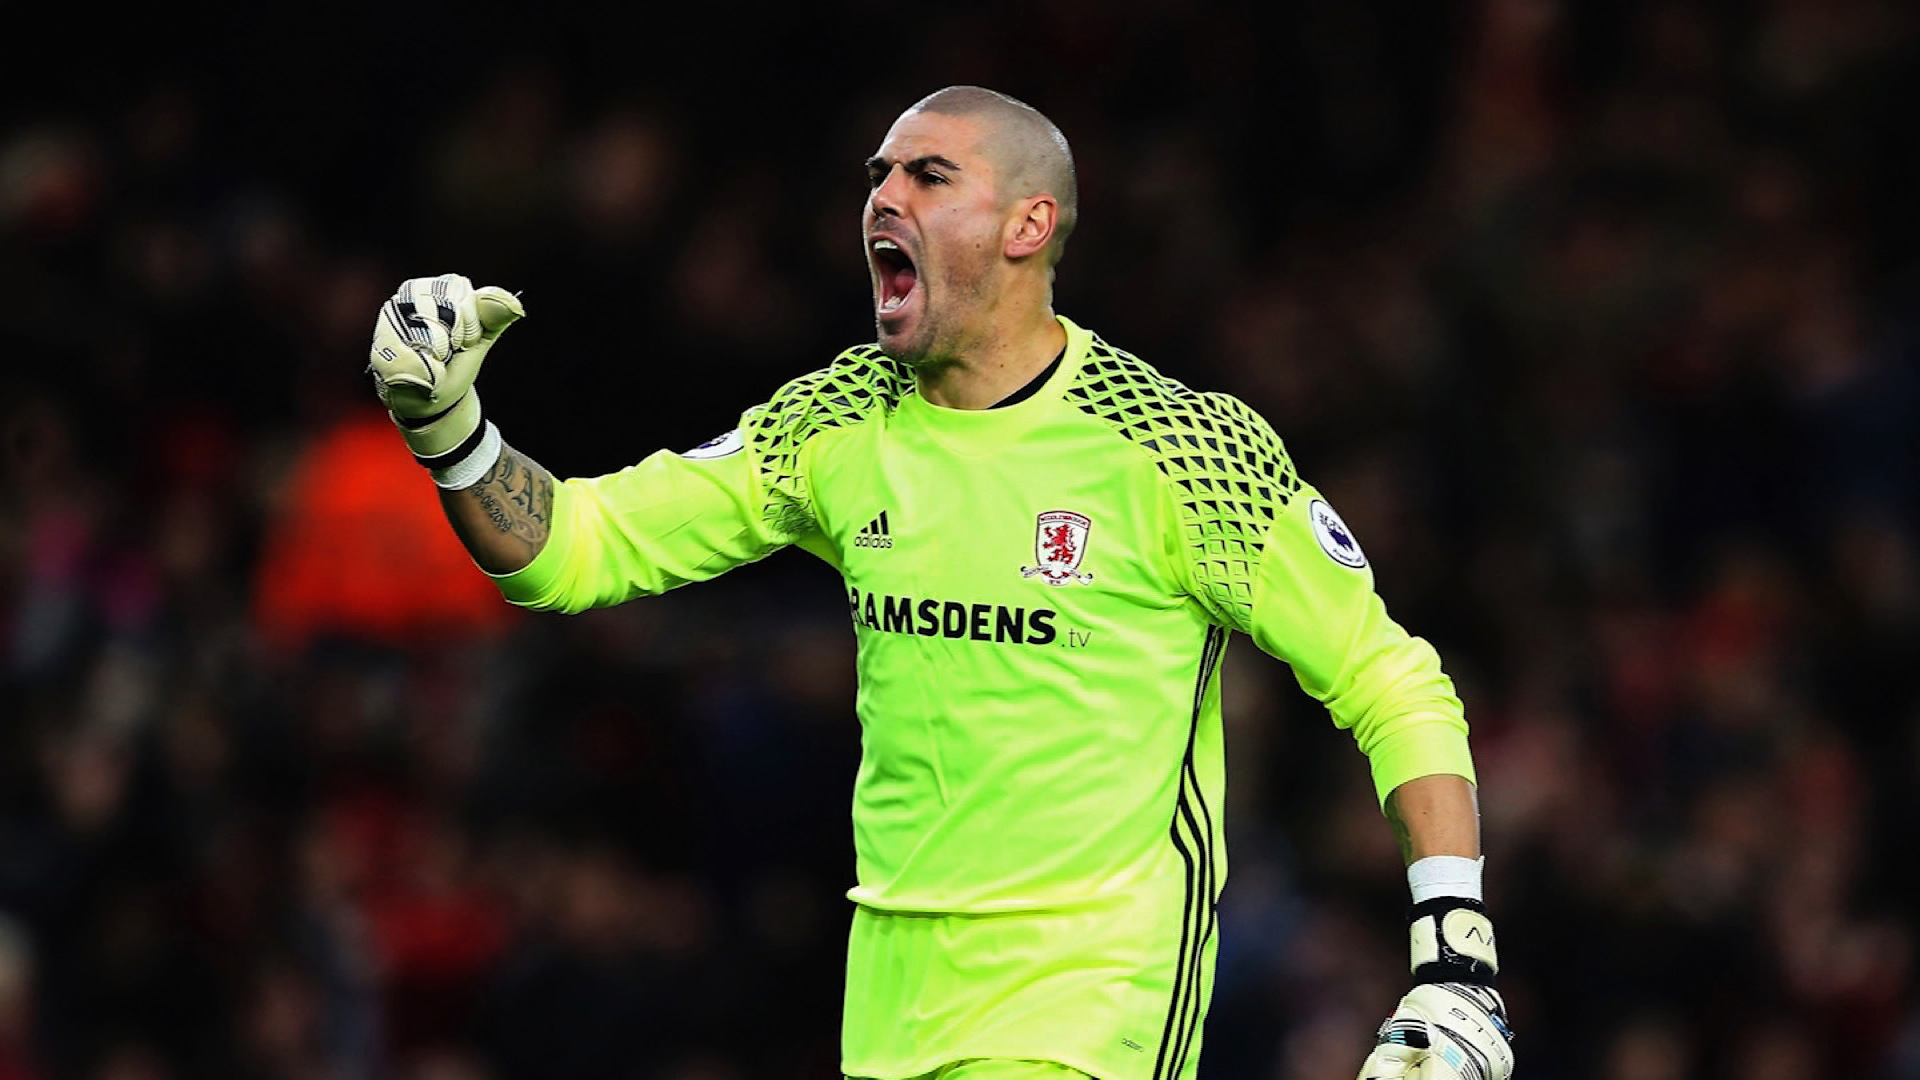 V­ctor Valdés de las canchas al mundo de la TV CNN Video